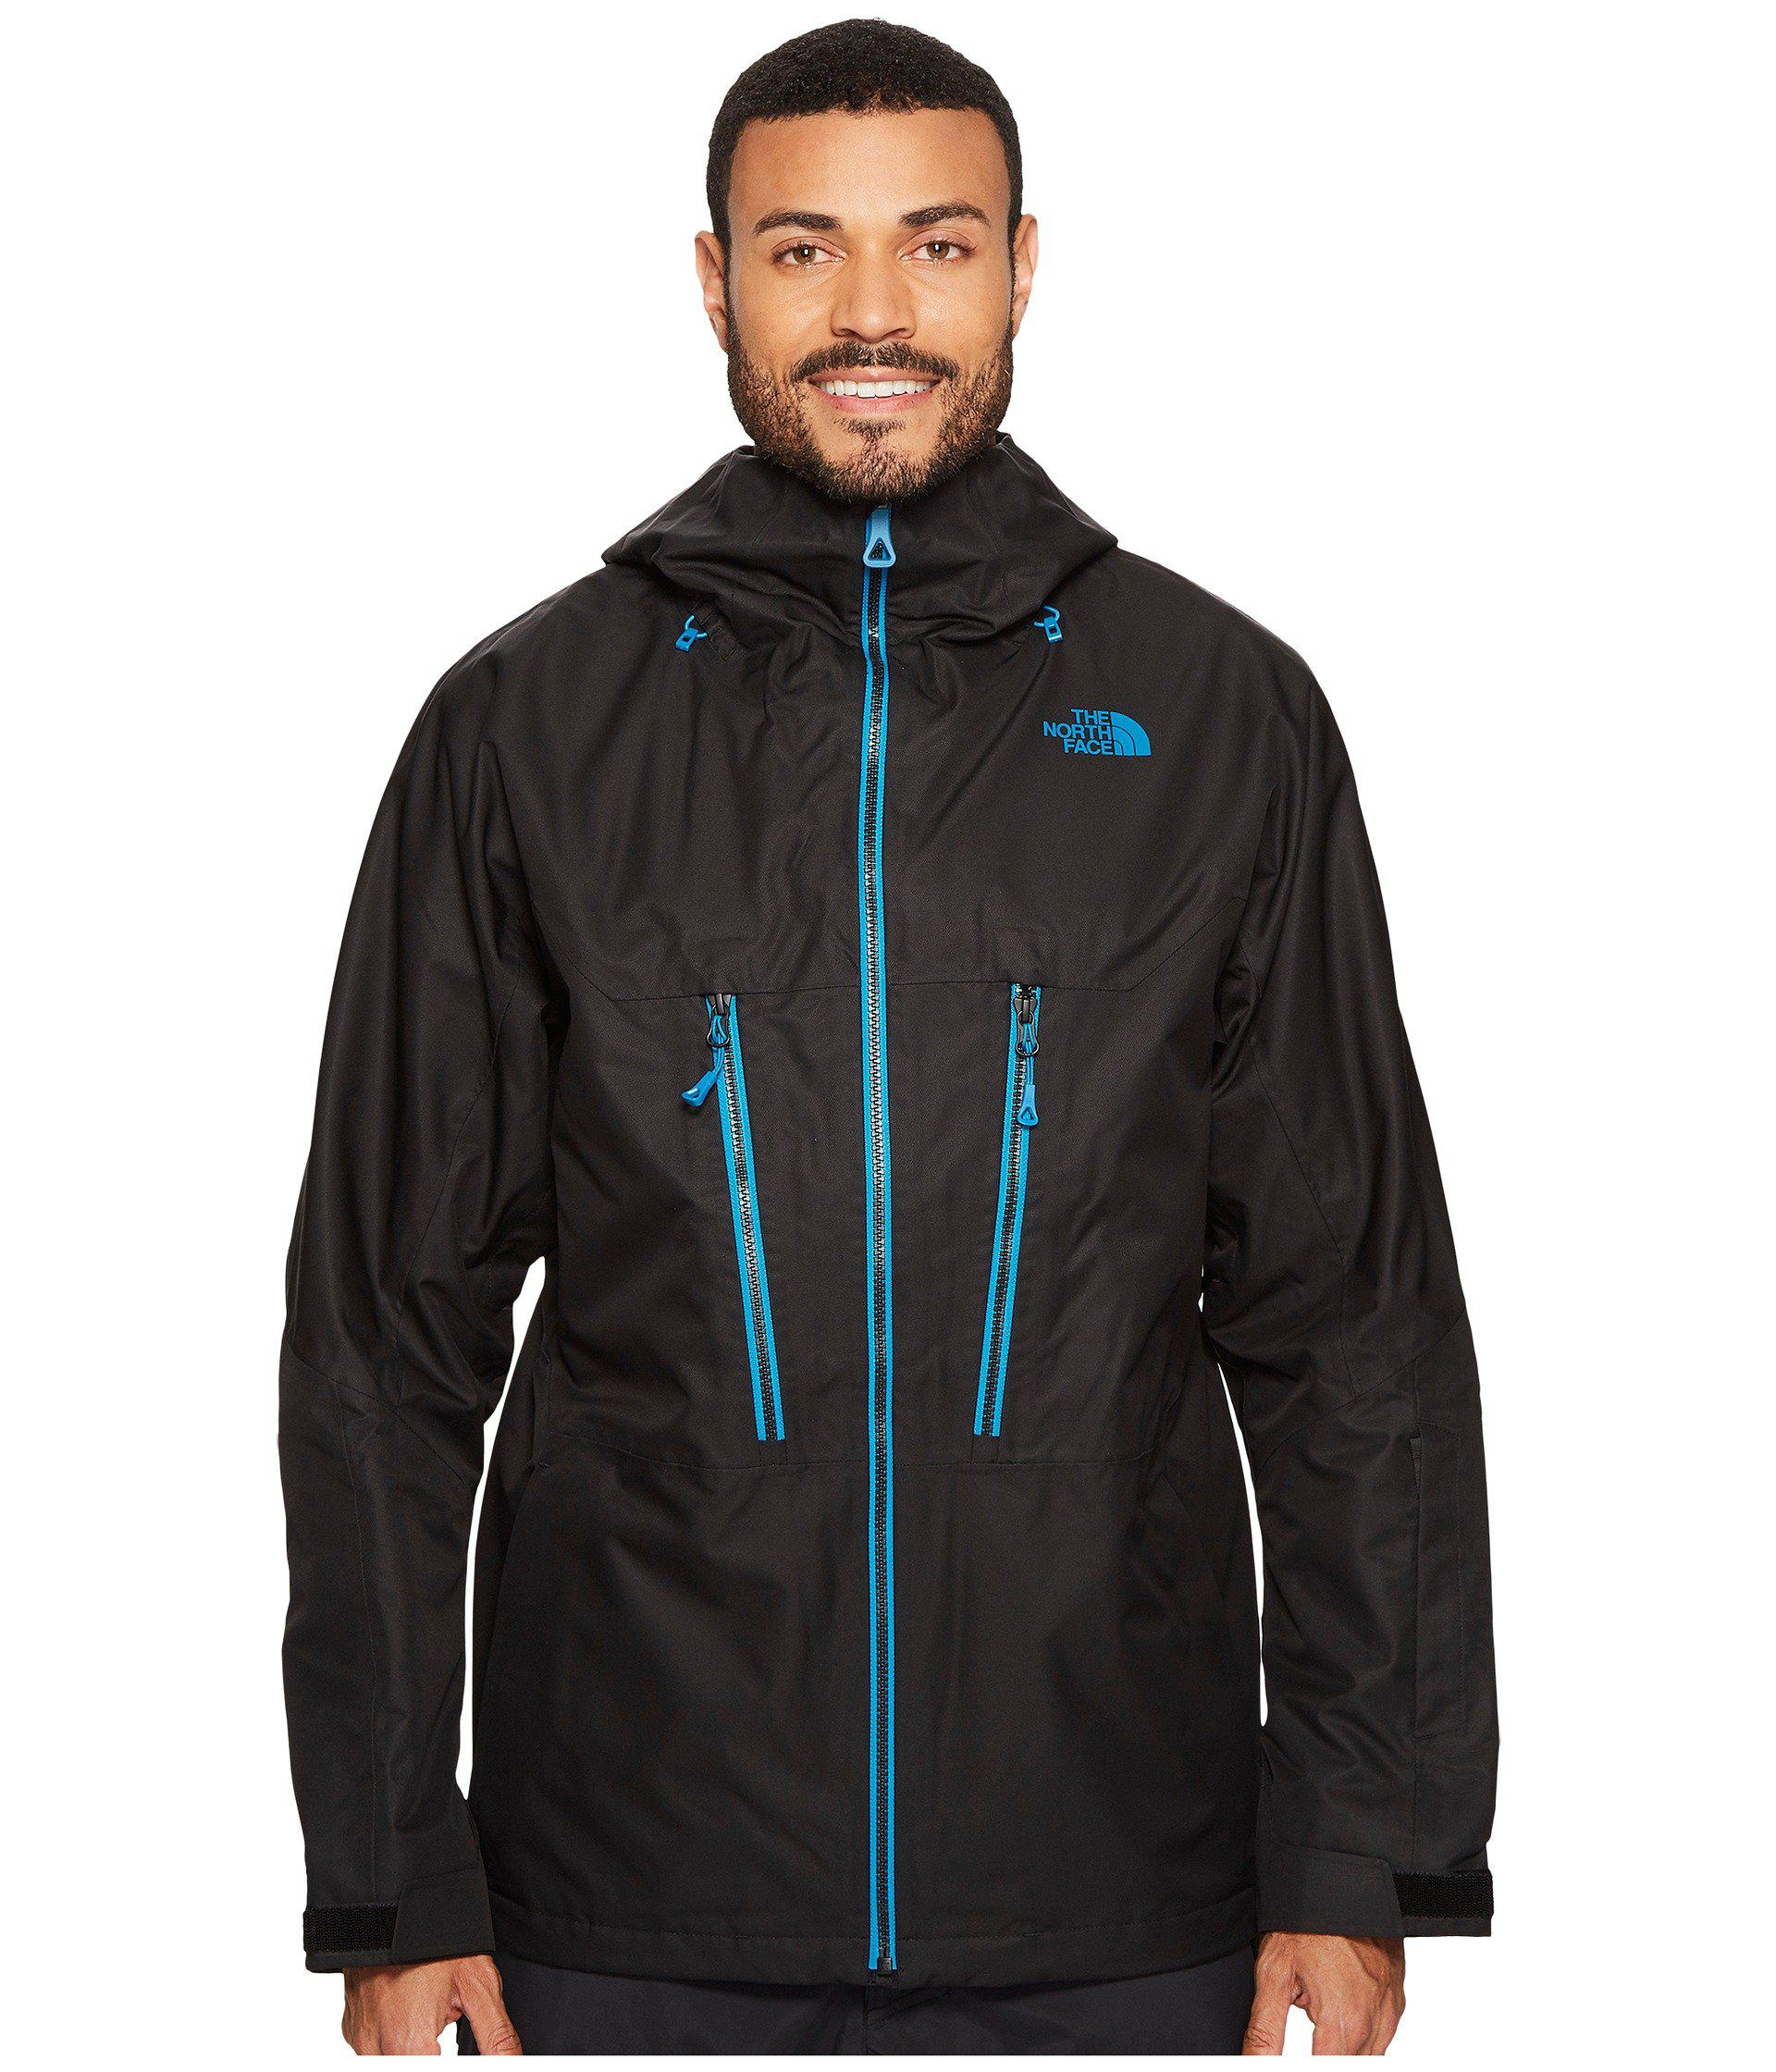 302bb6c16 ... promo code for the north face. mens black thermoball snow triclimate  jacket dfbbf ae41e